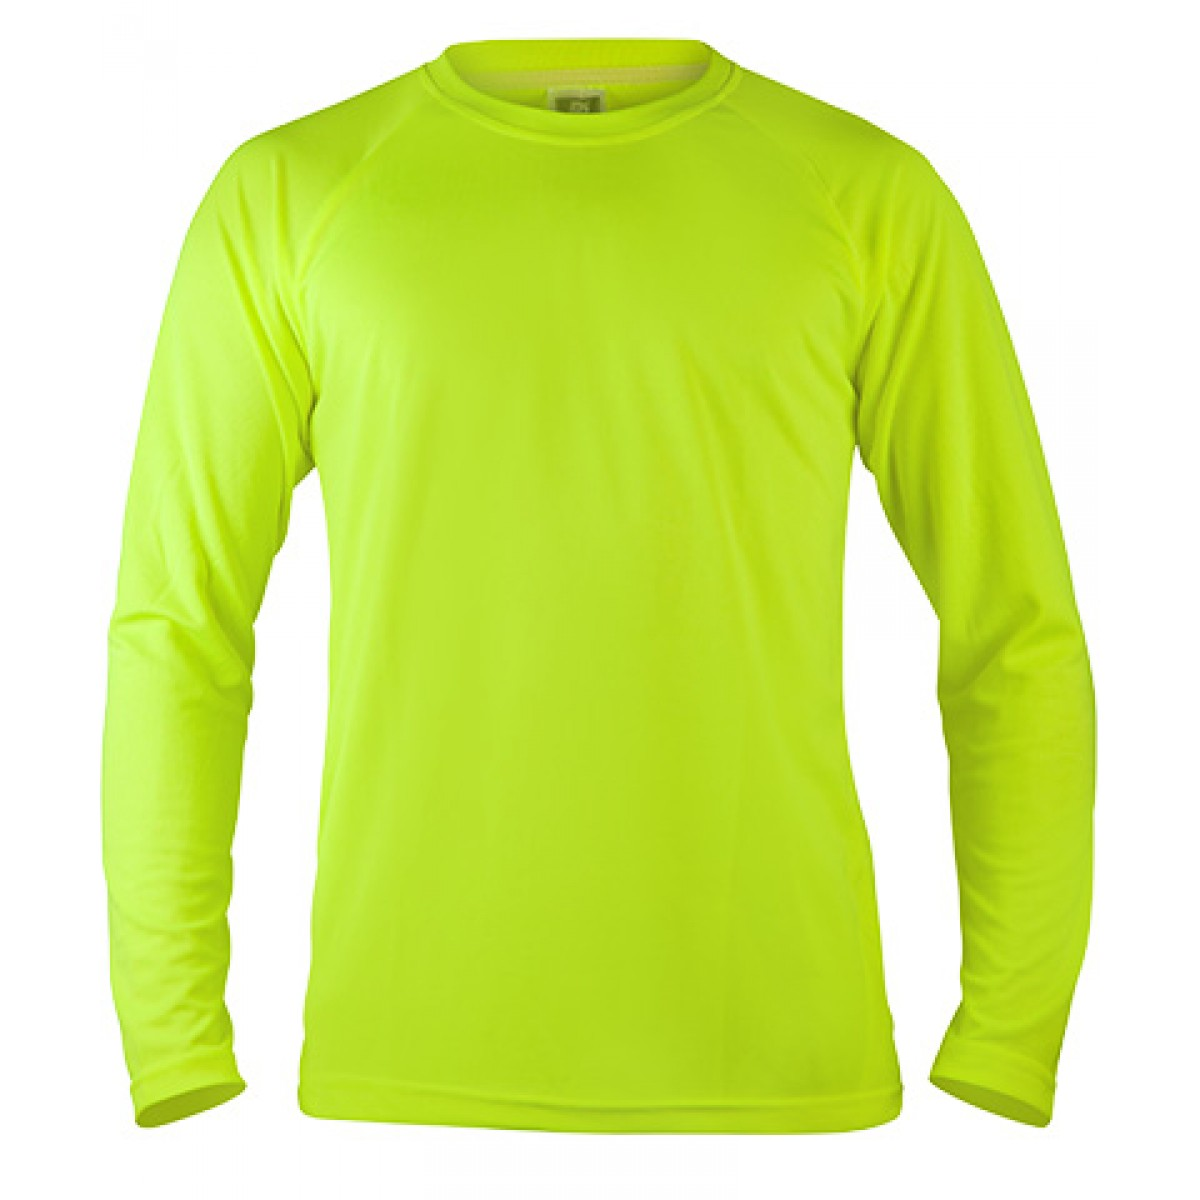 Long Sleeve Neon Green Mesh Performance